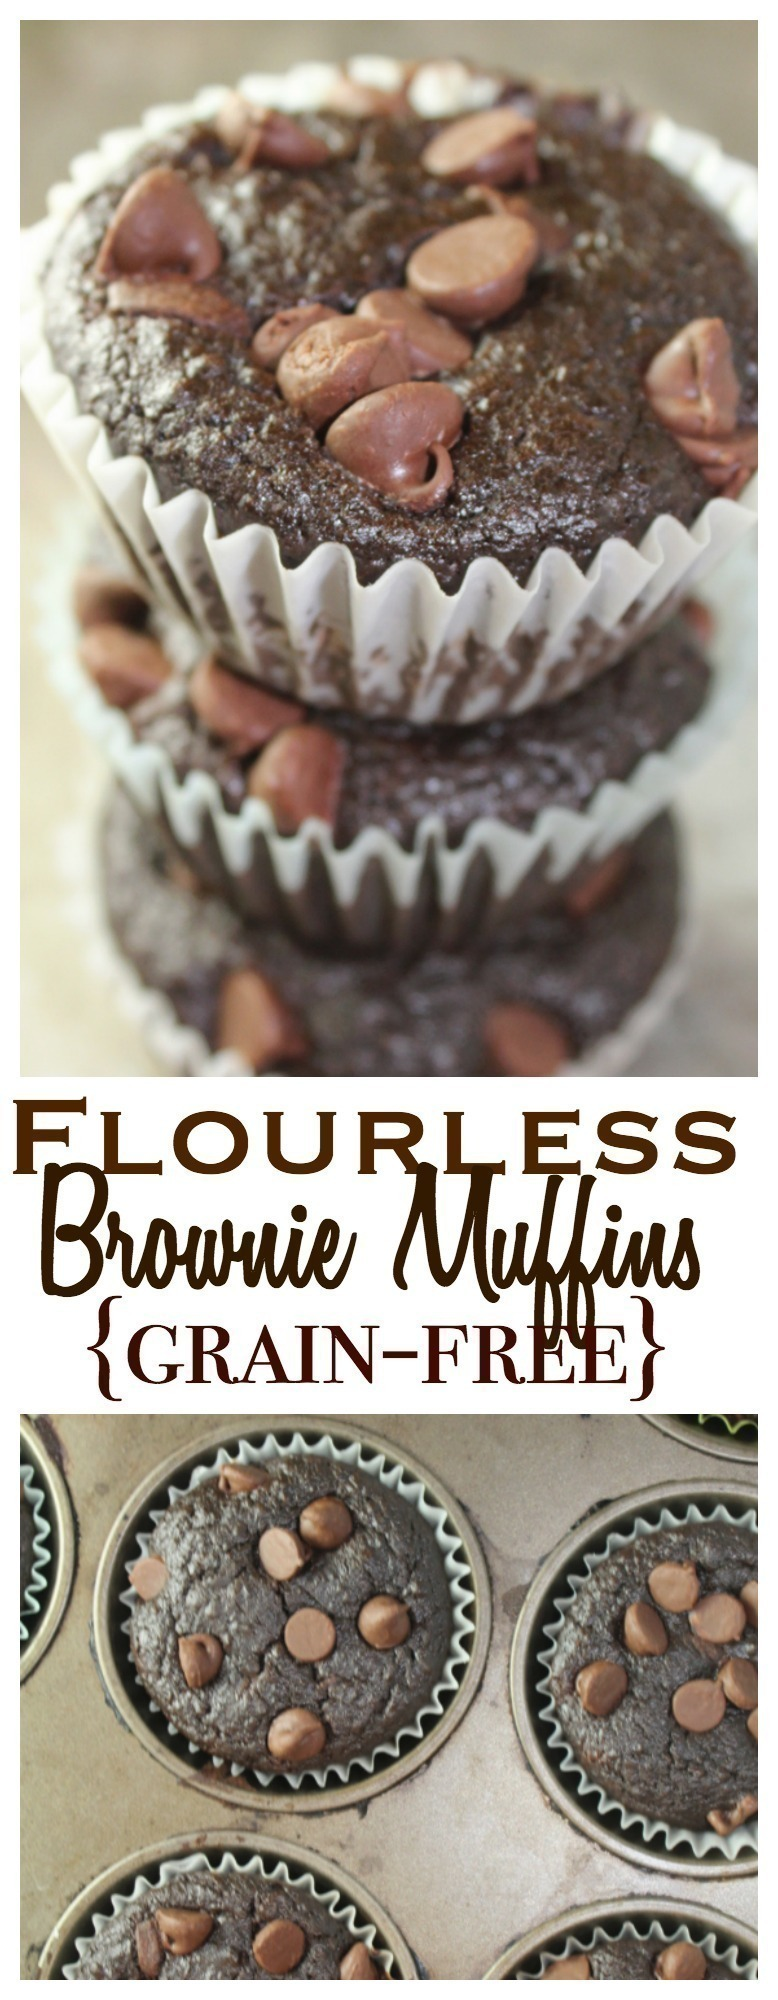 A delicious twist on regular brownies, using chickpeas and maple syrup in lieu of flour and refined sugar. They are amazing!